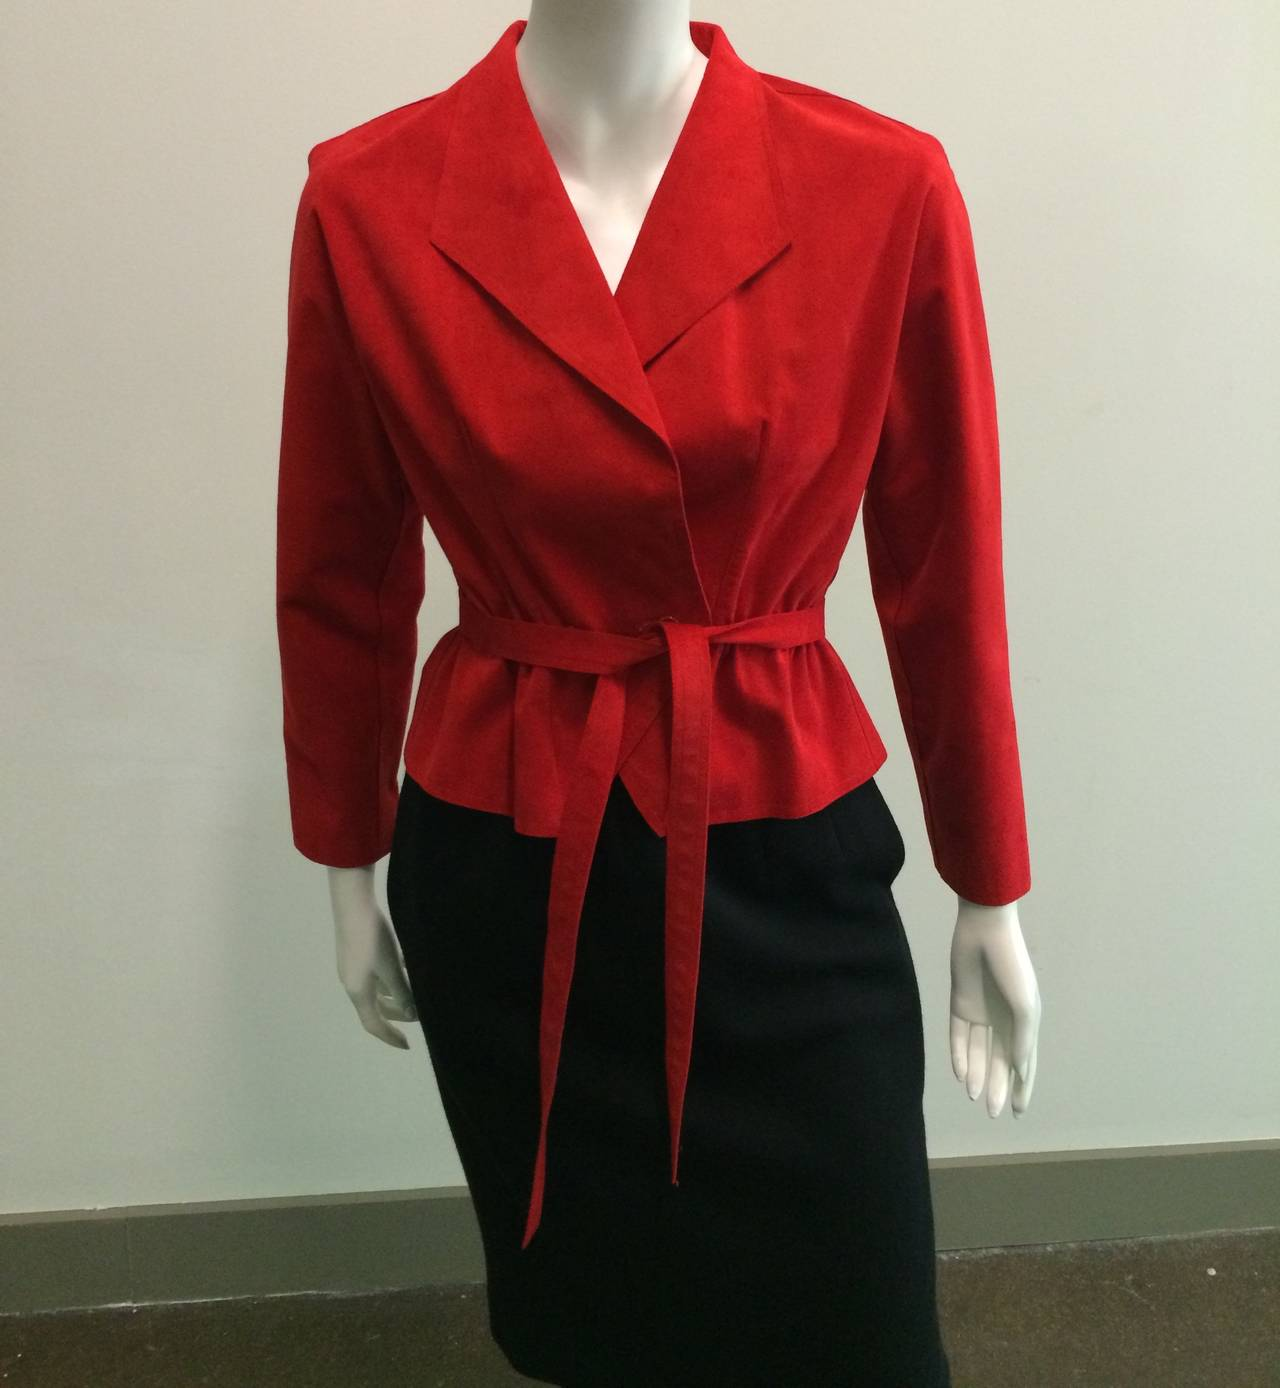 Halston 1970s Ultra Suede Red Jacket with Black Wool Skirt Size 4. 2